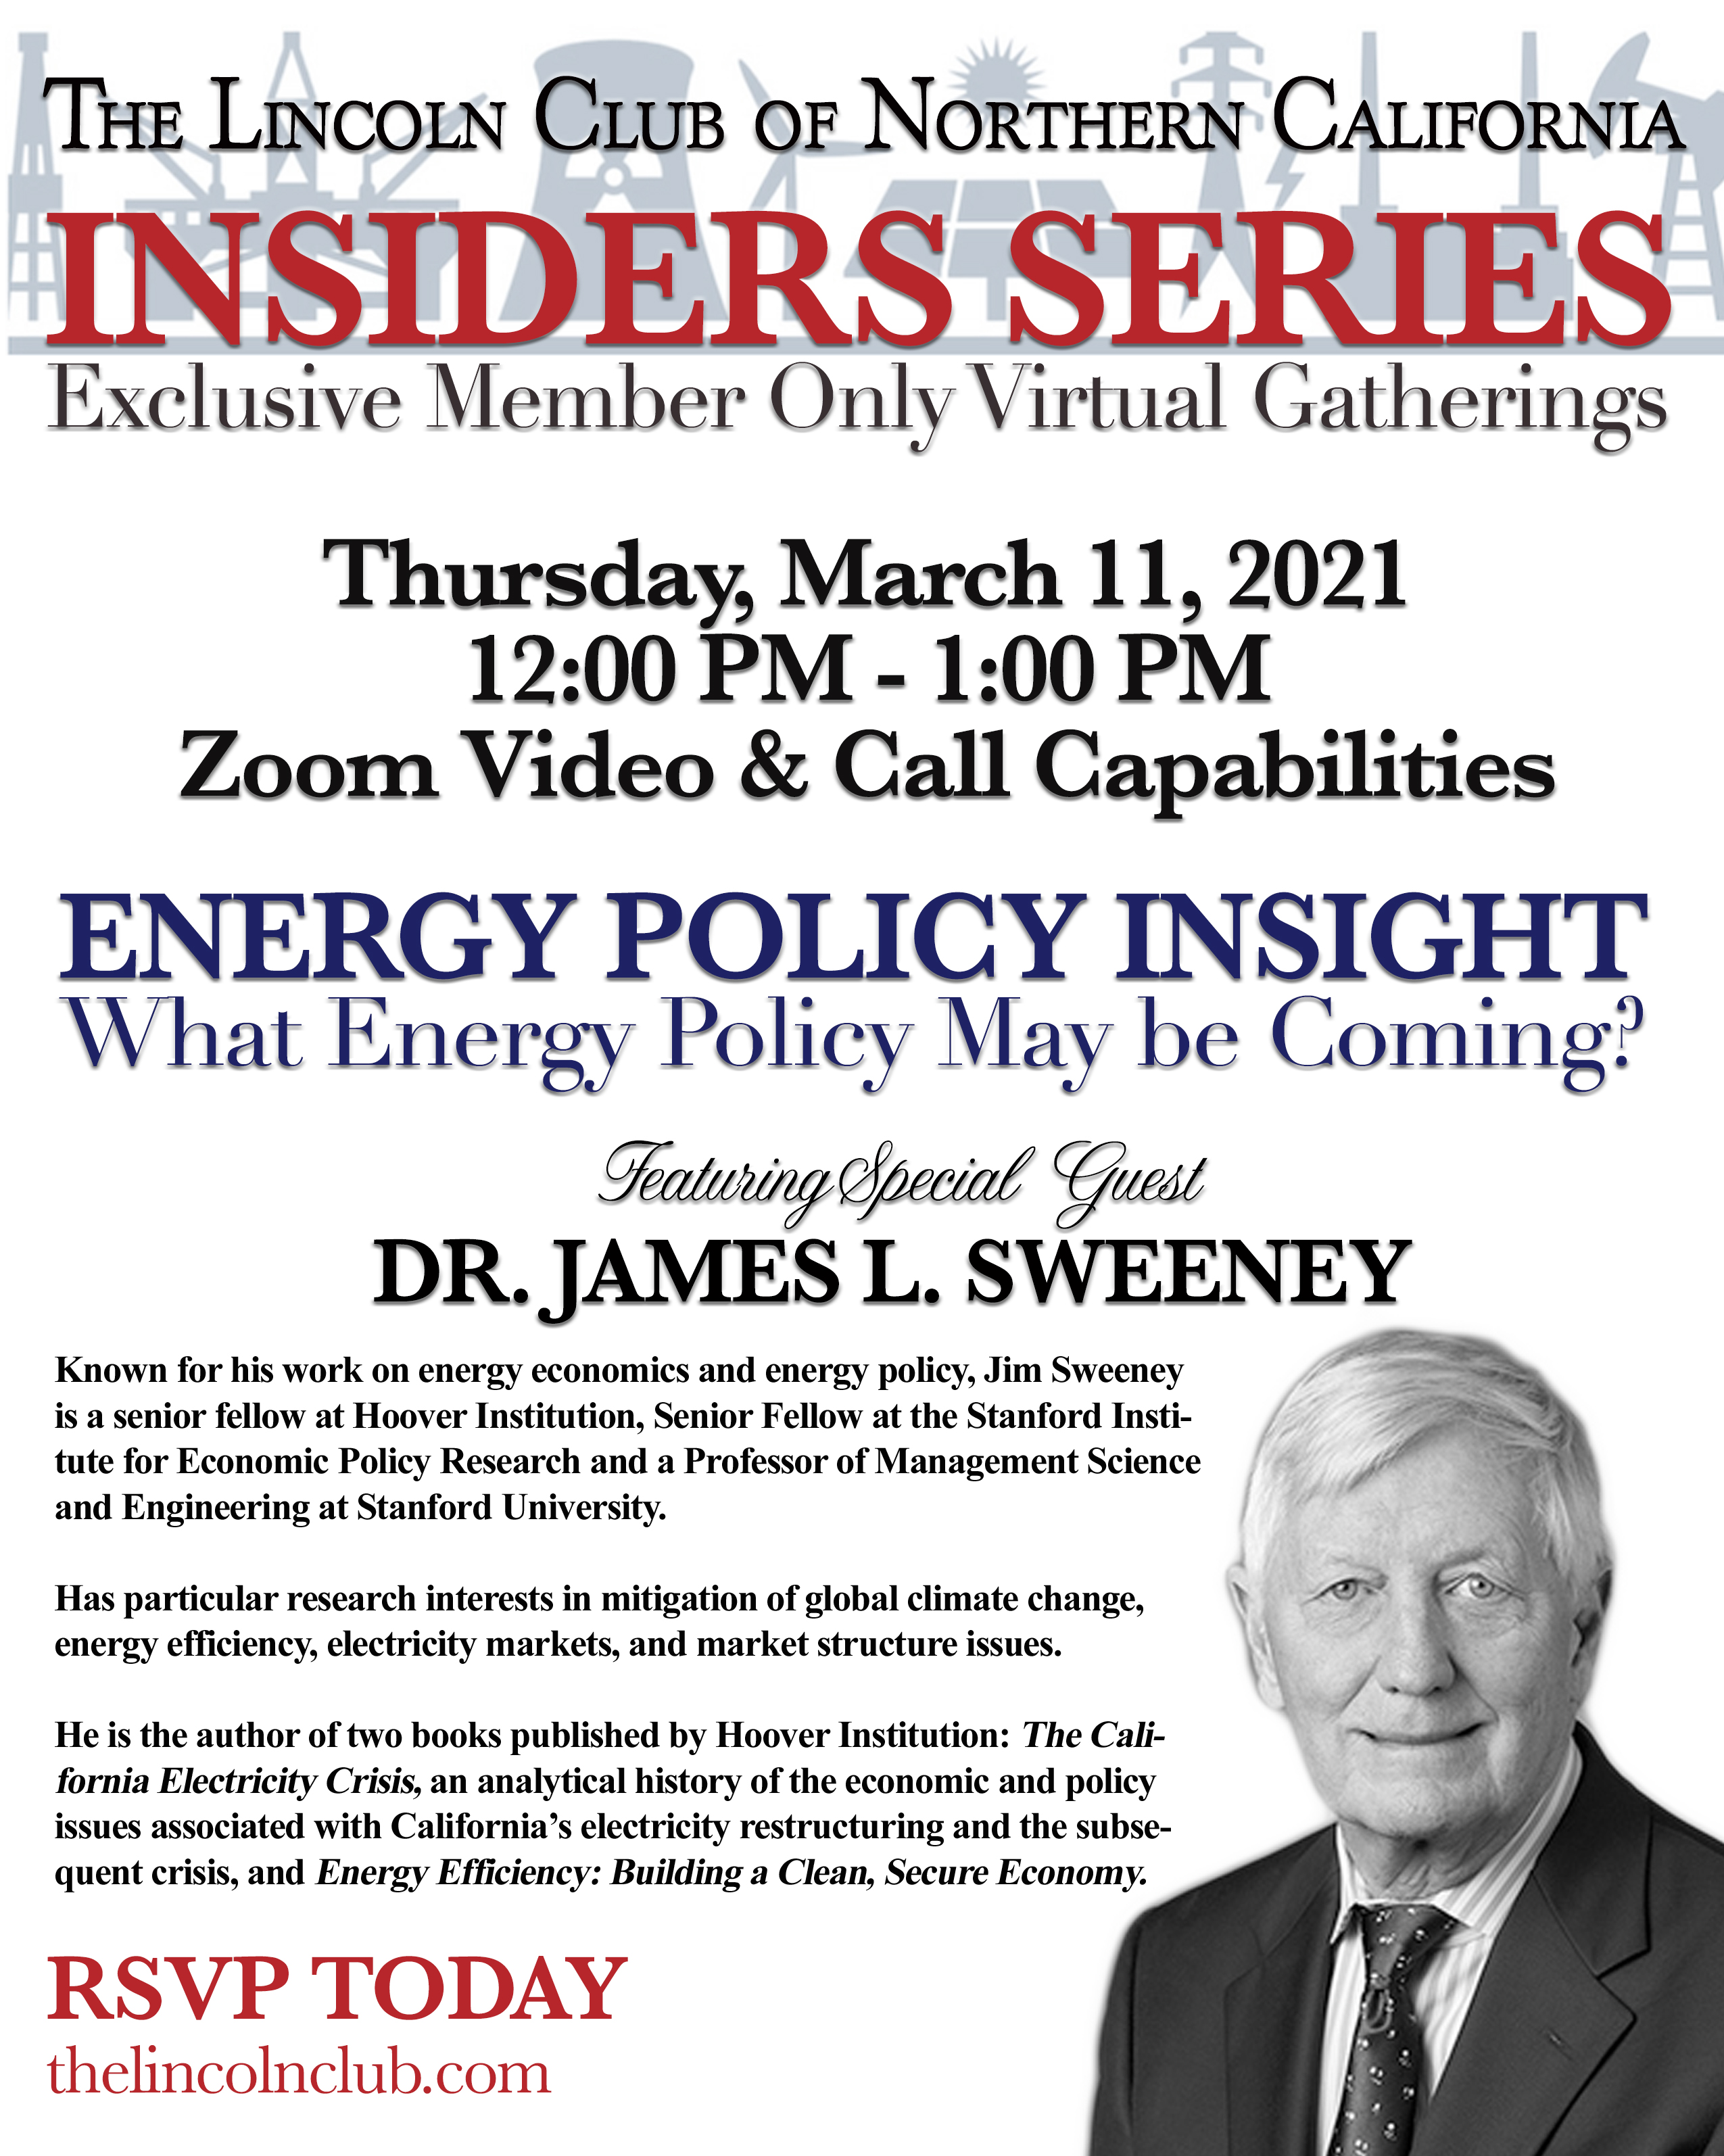 Insiders Series with Dr. James Sweeney